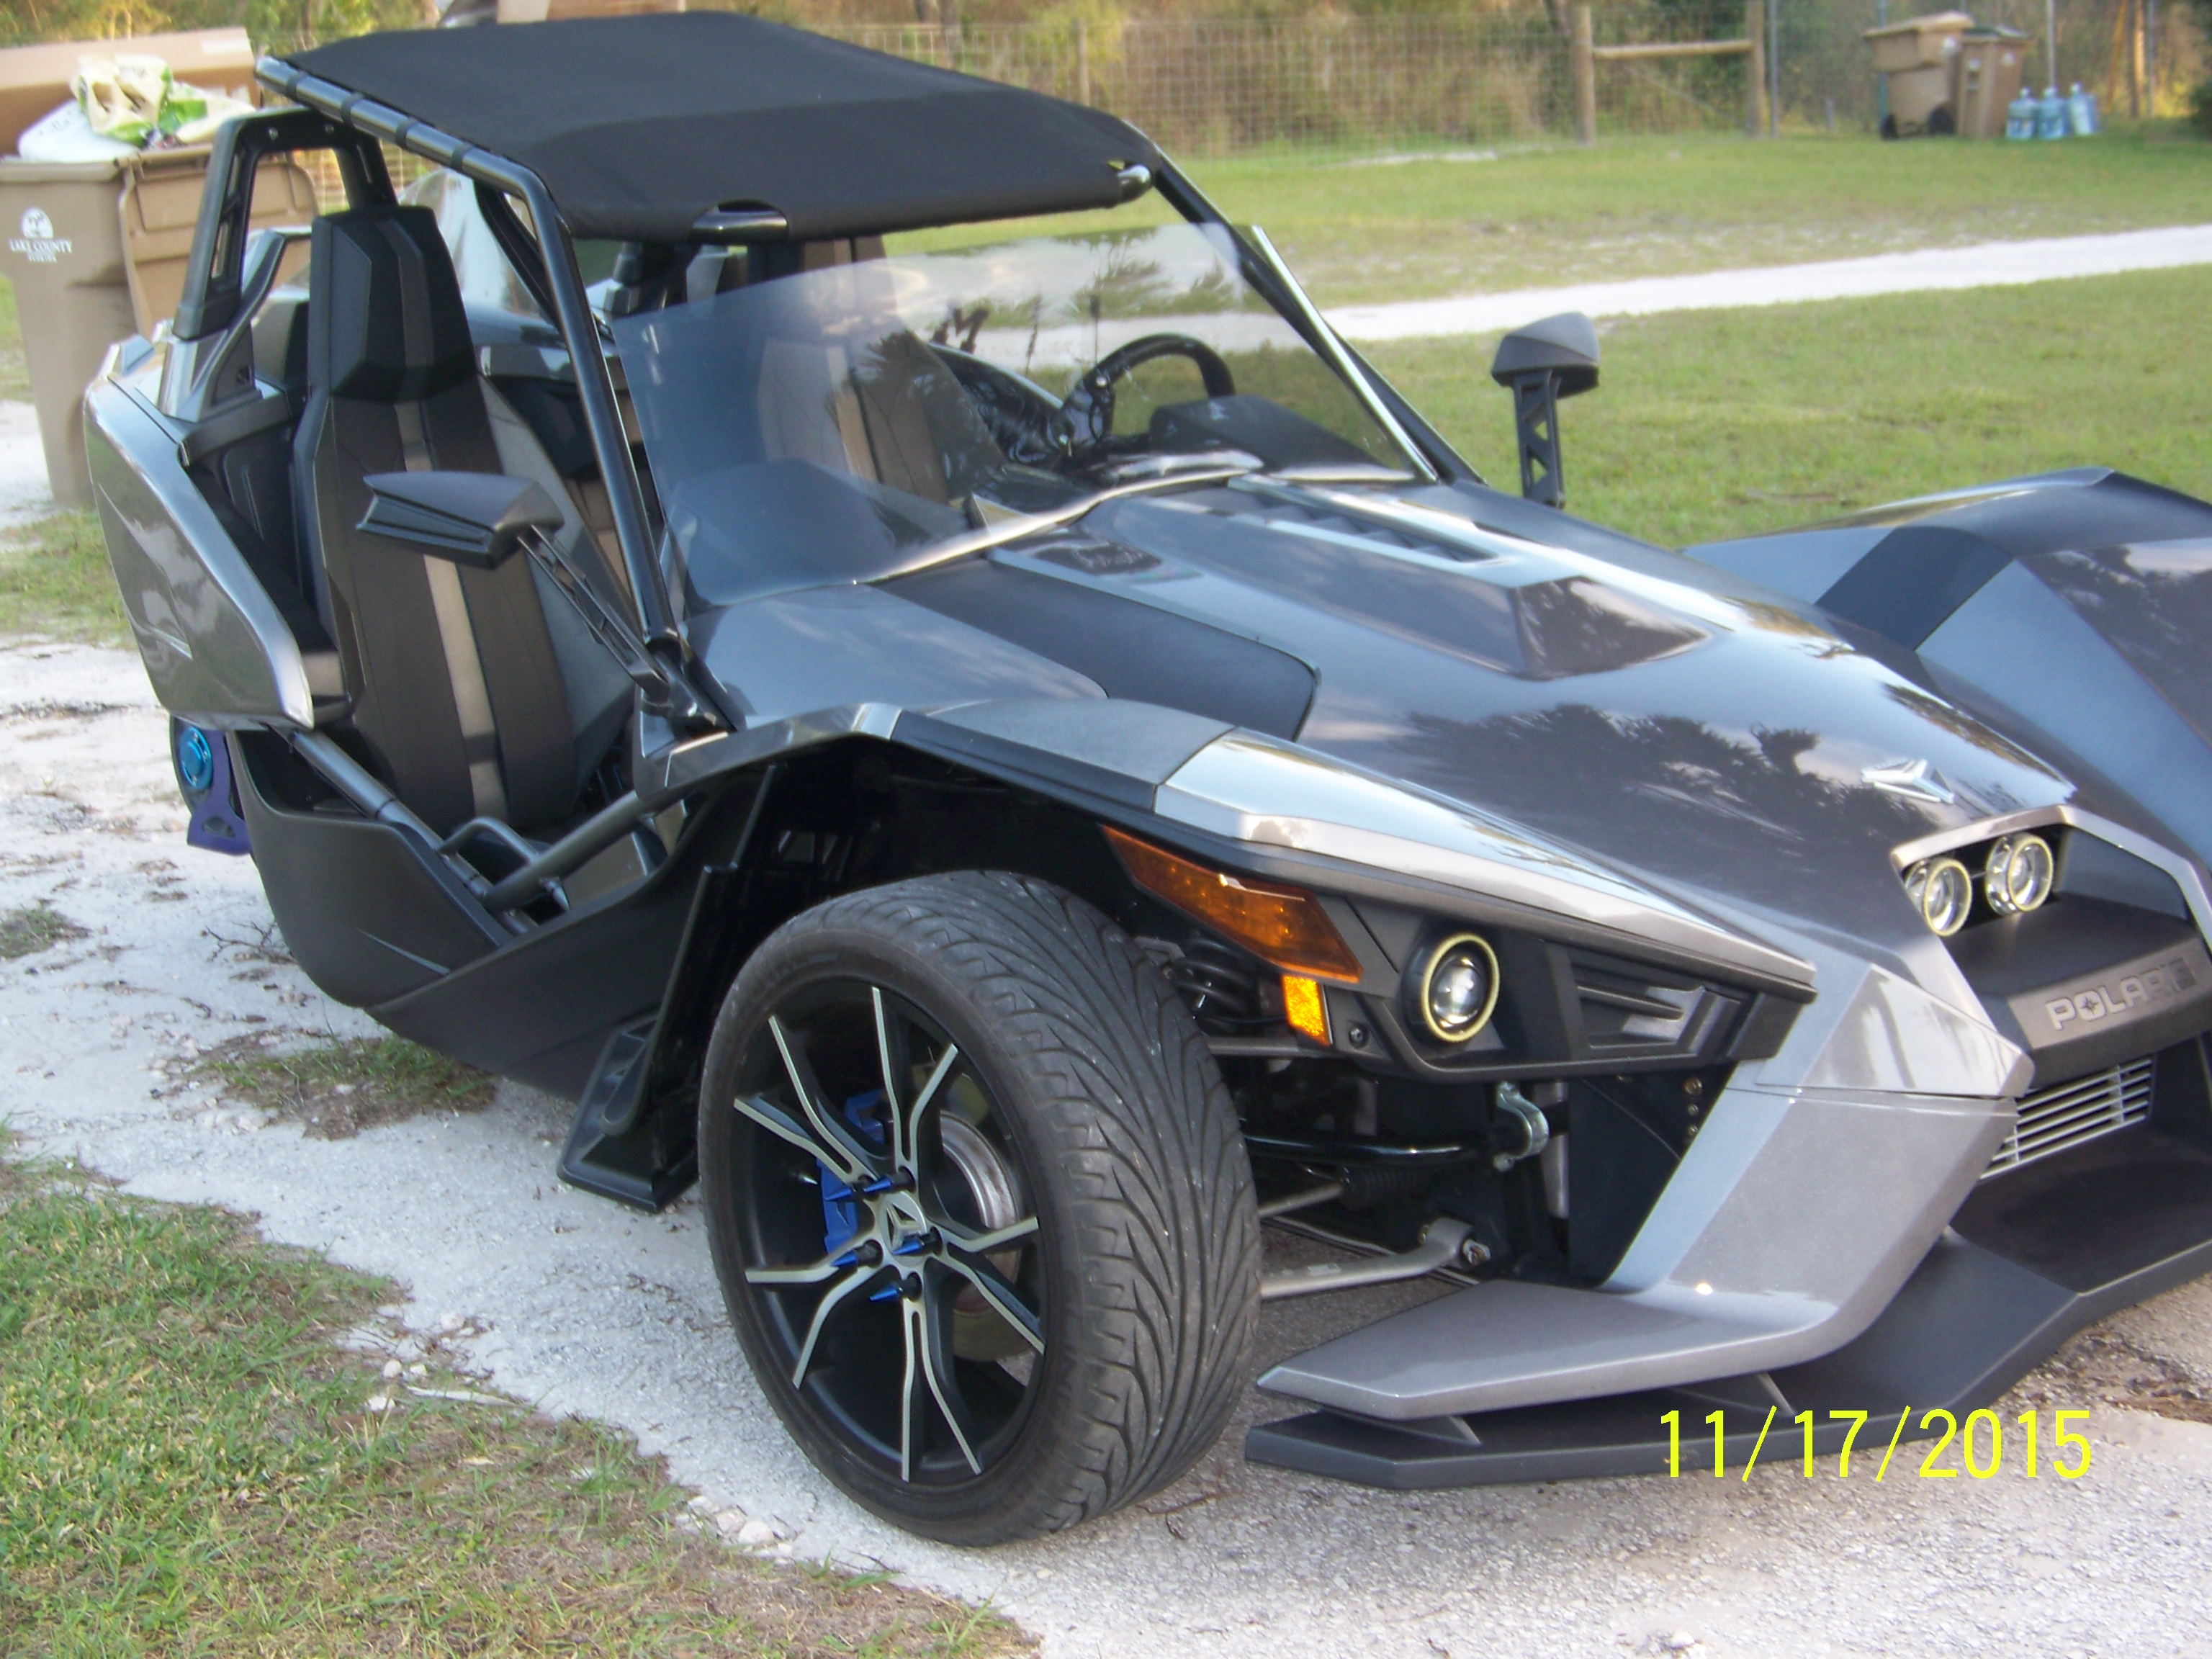 twist dynamics 100_1003jpg - Polaris Slingshot Roof